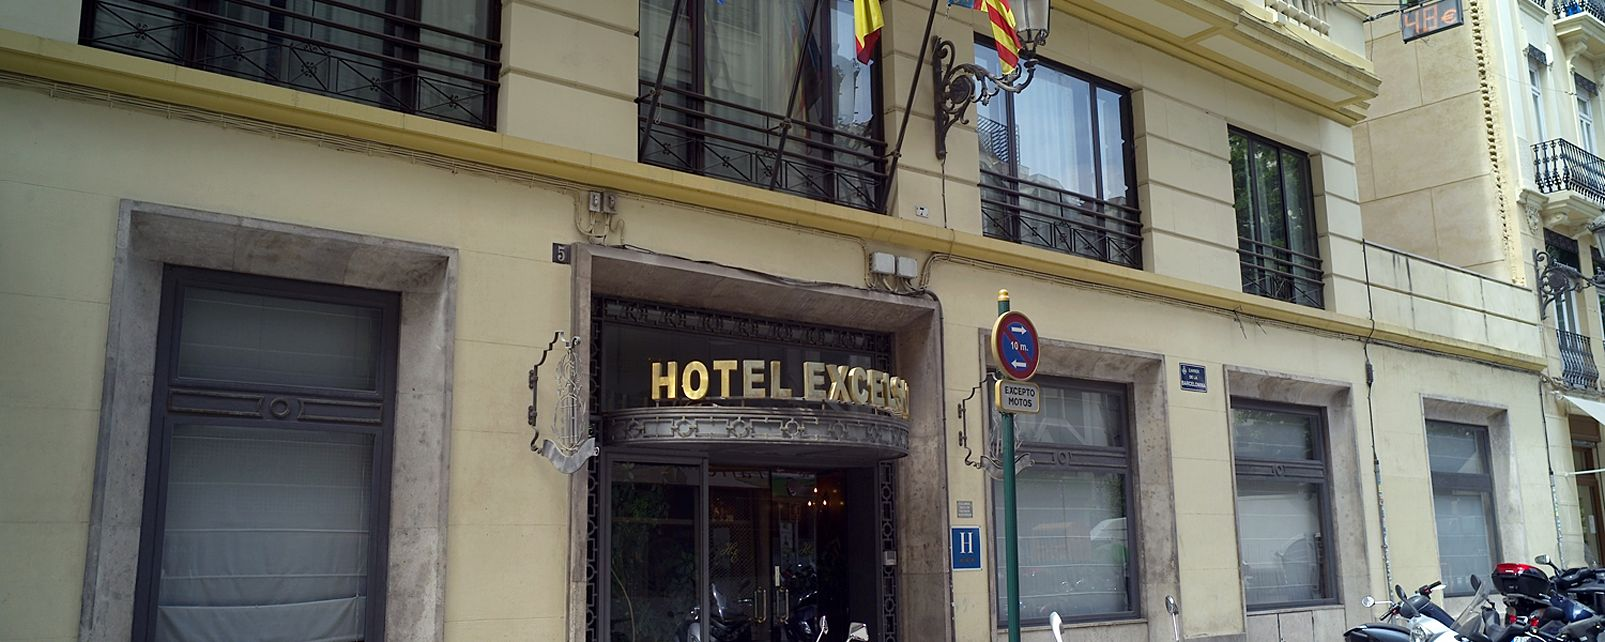 Hotel Catalonia Excelsior Hotel